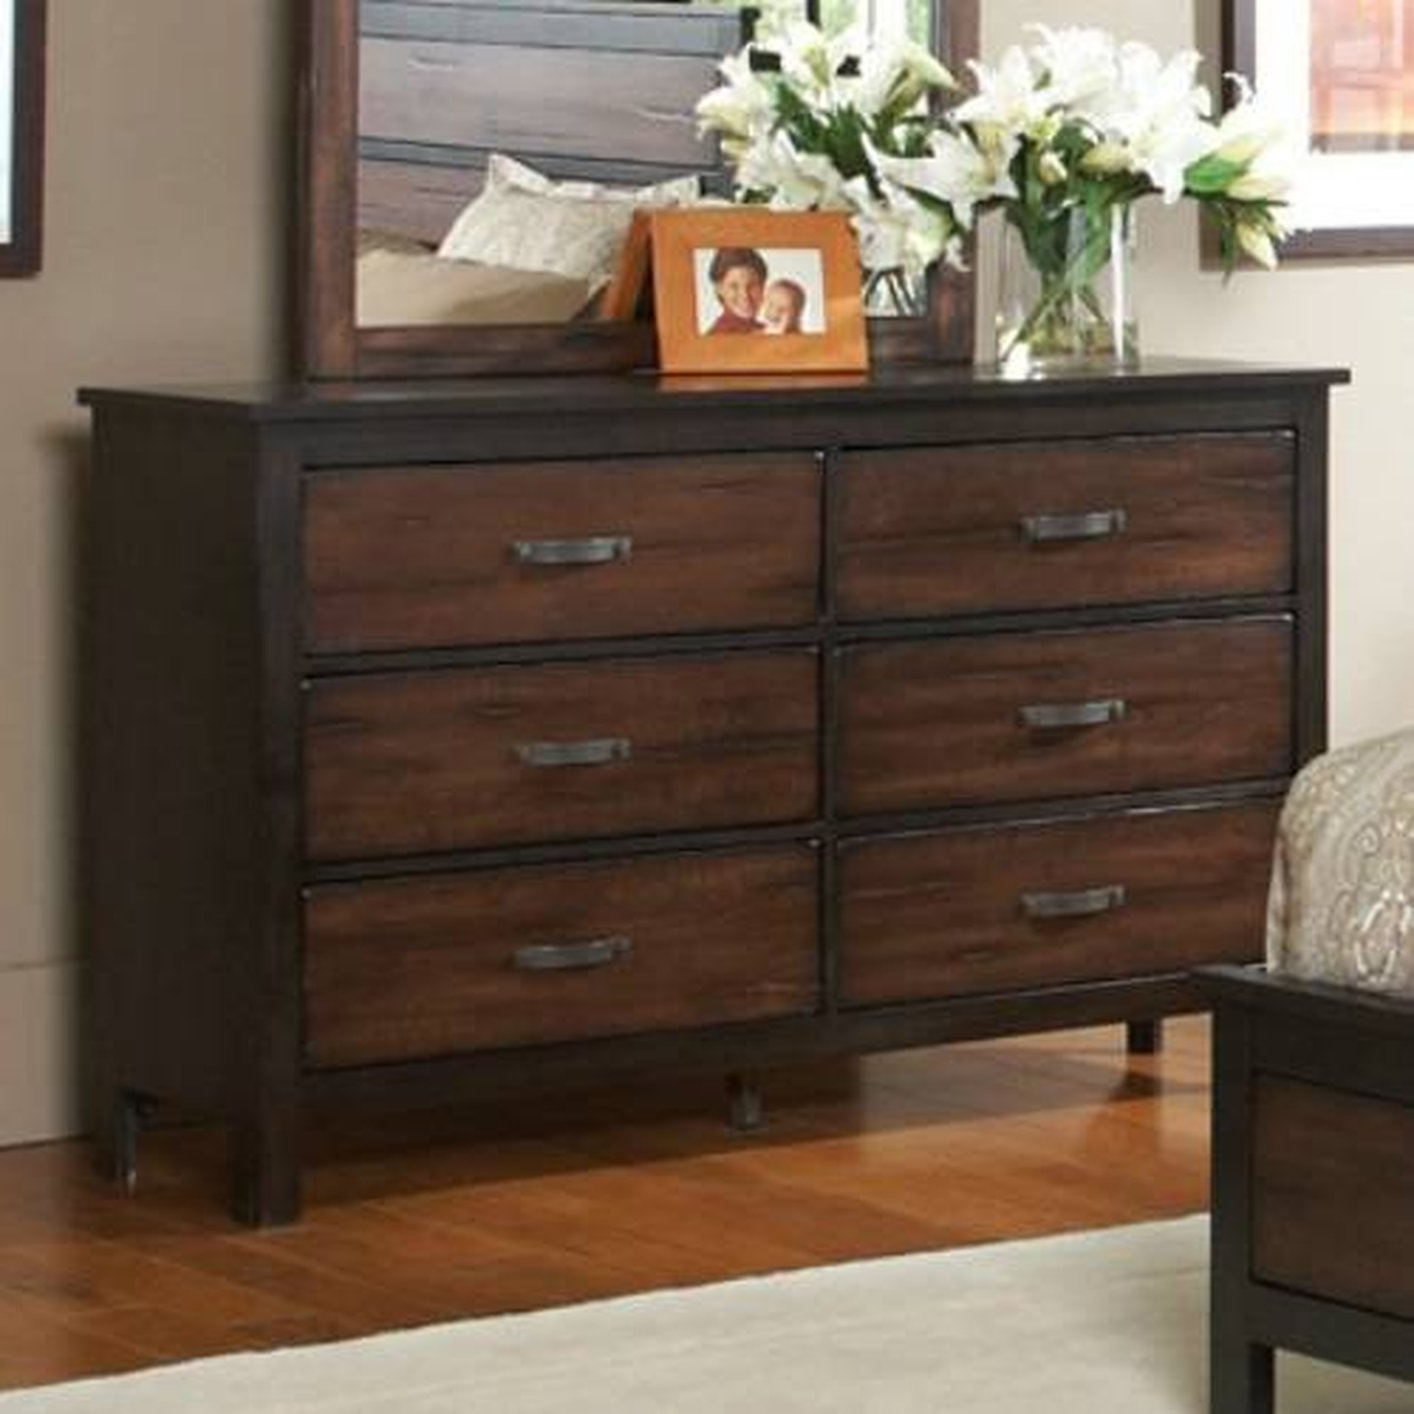 shipping canyon overstock home garden preston style century drawer black free palm dresser product mid today cherry